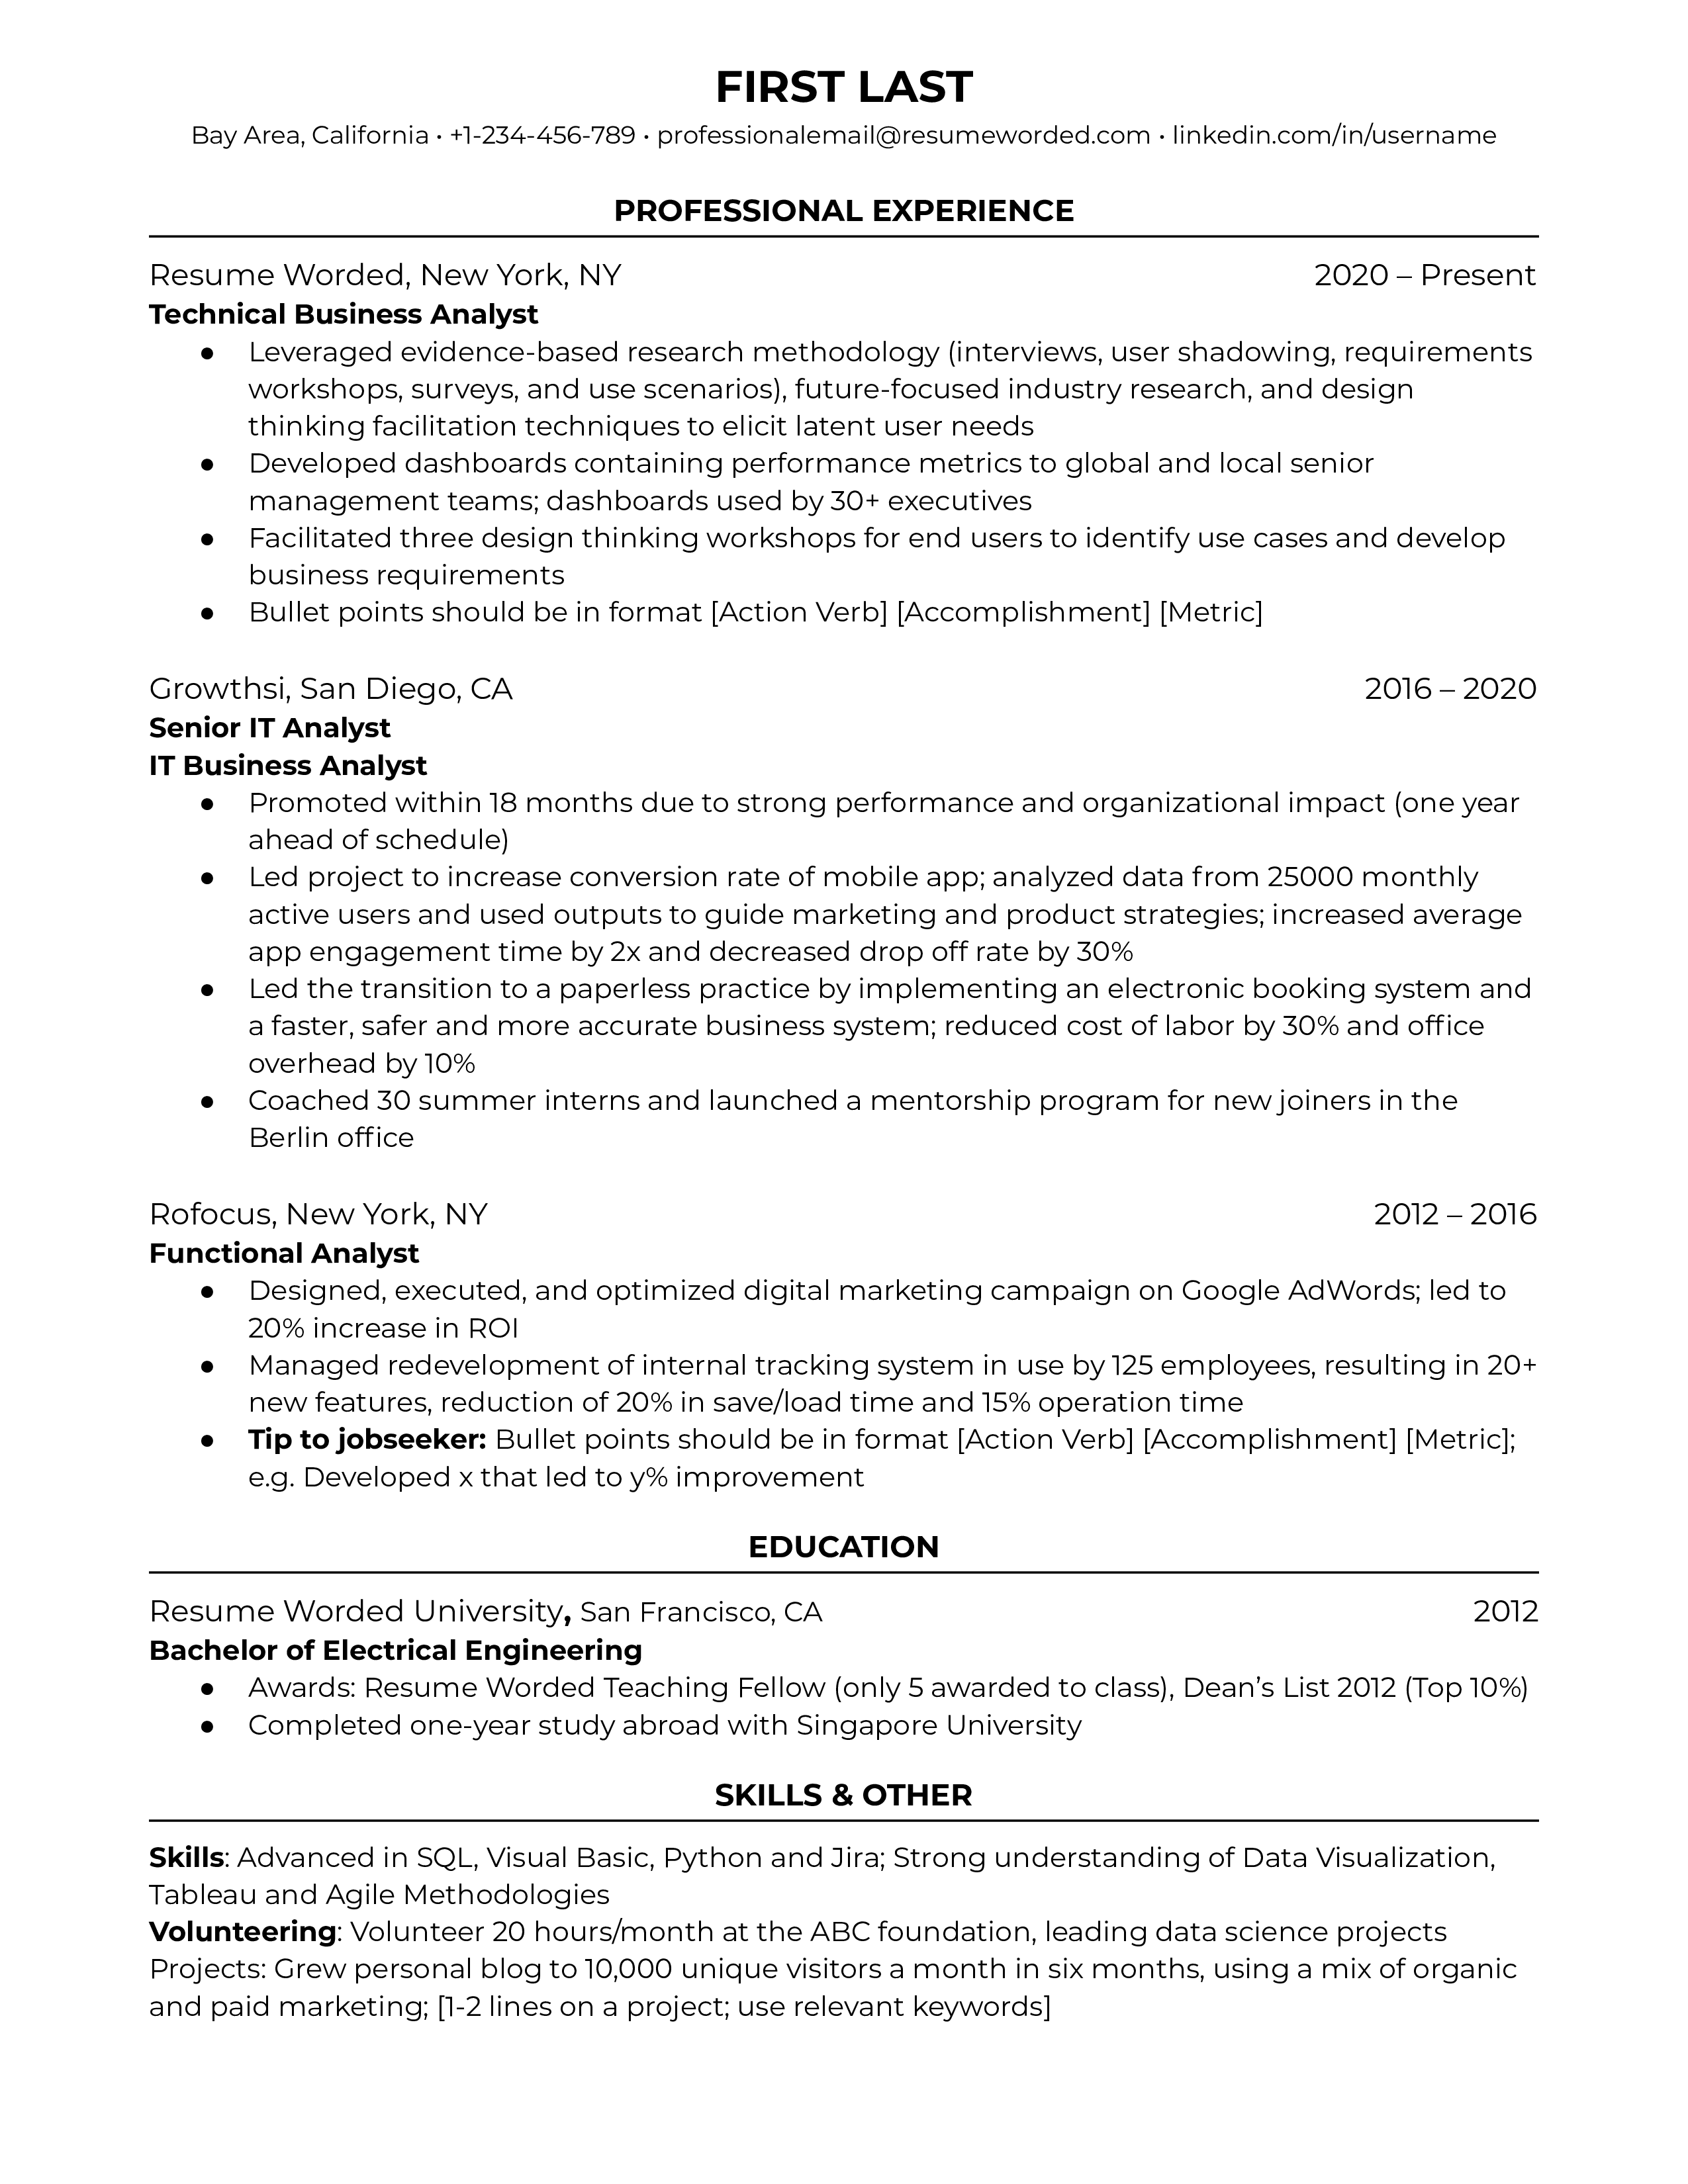 Technical business analyst resume with relevant metrics, technical skills, and work history